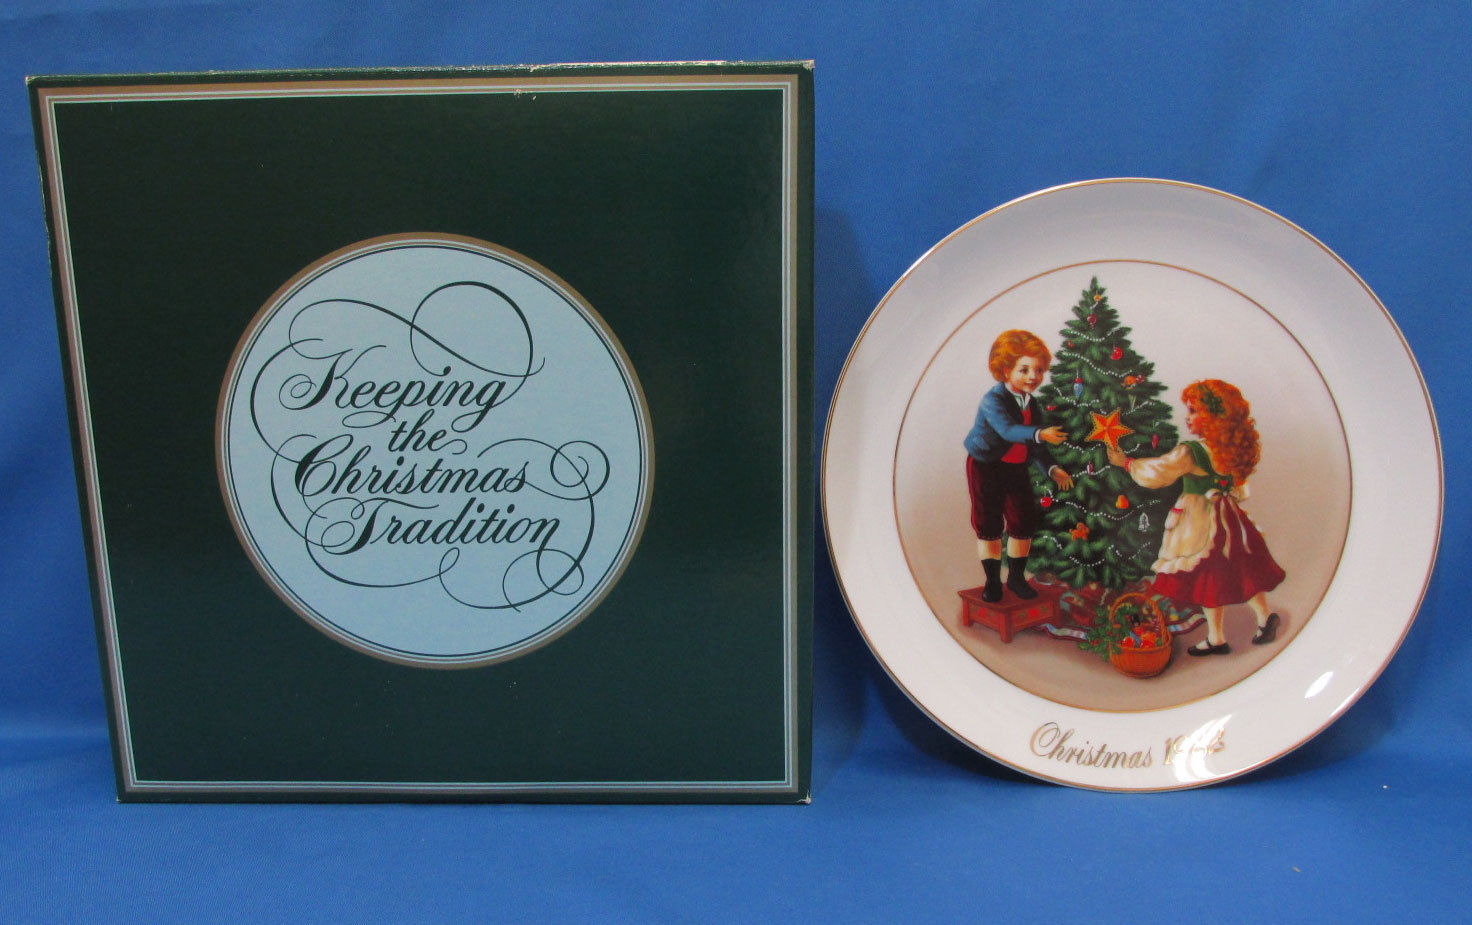 Vintage 1982 Collectors Plate Avon Christmas Memories Keeping The Tradition 22K image 2